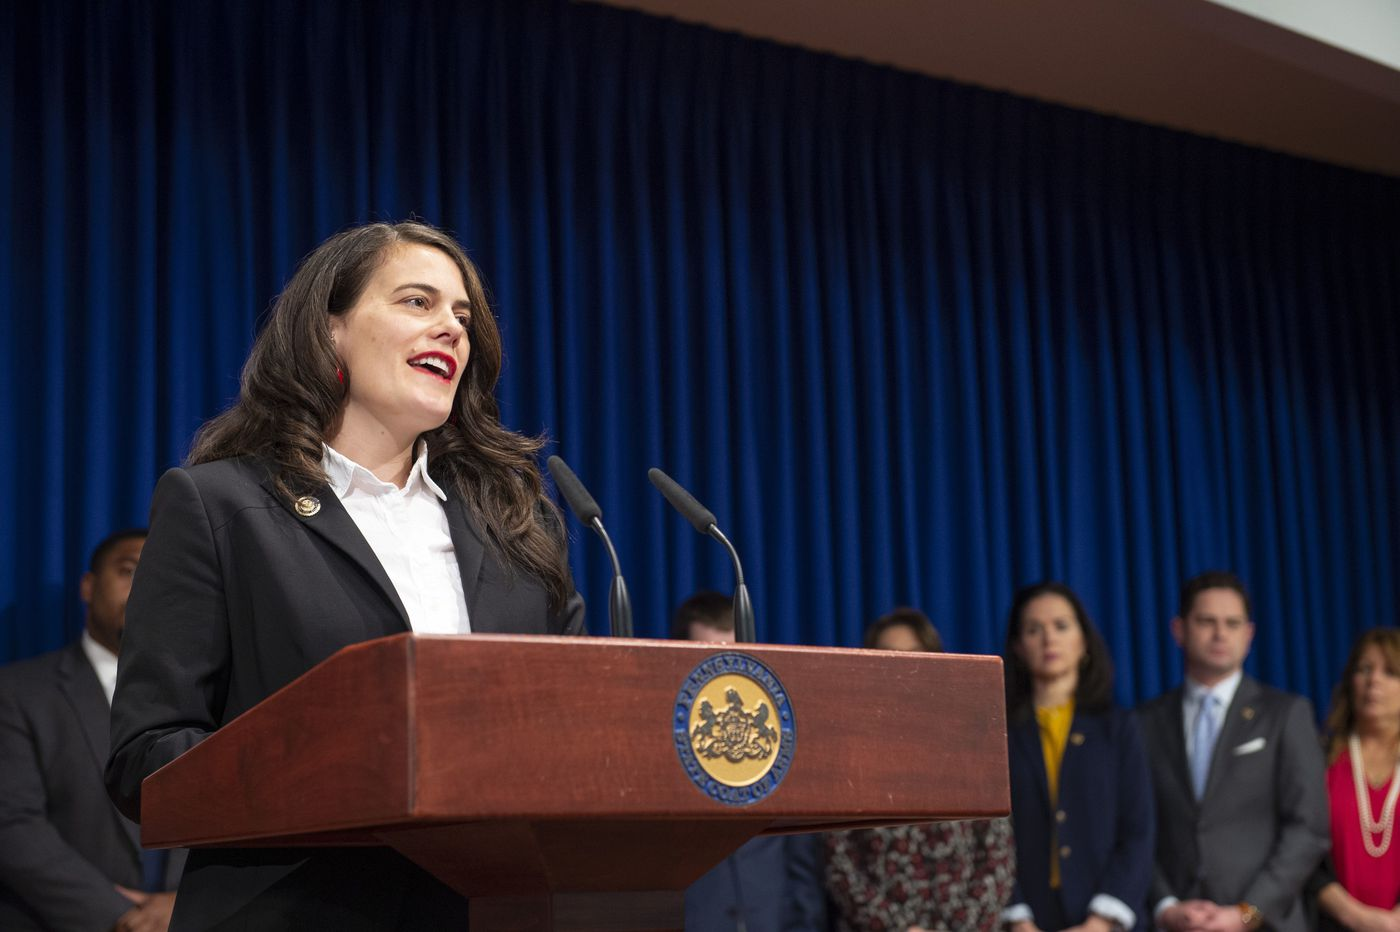 Statewide 'Fair Workweek' bill to be introduced for retail, fast-food workers